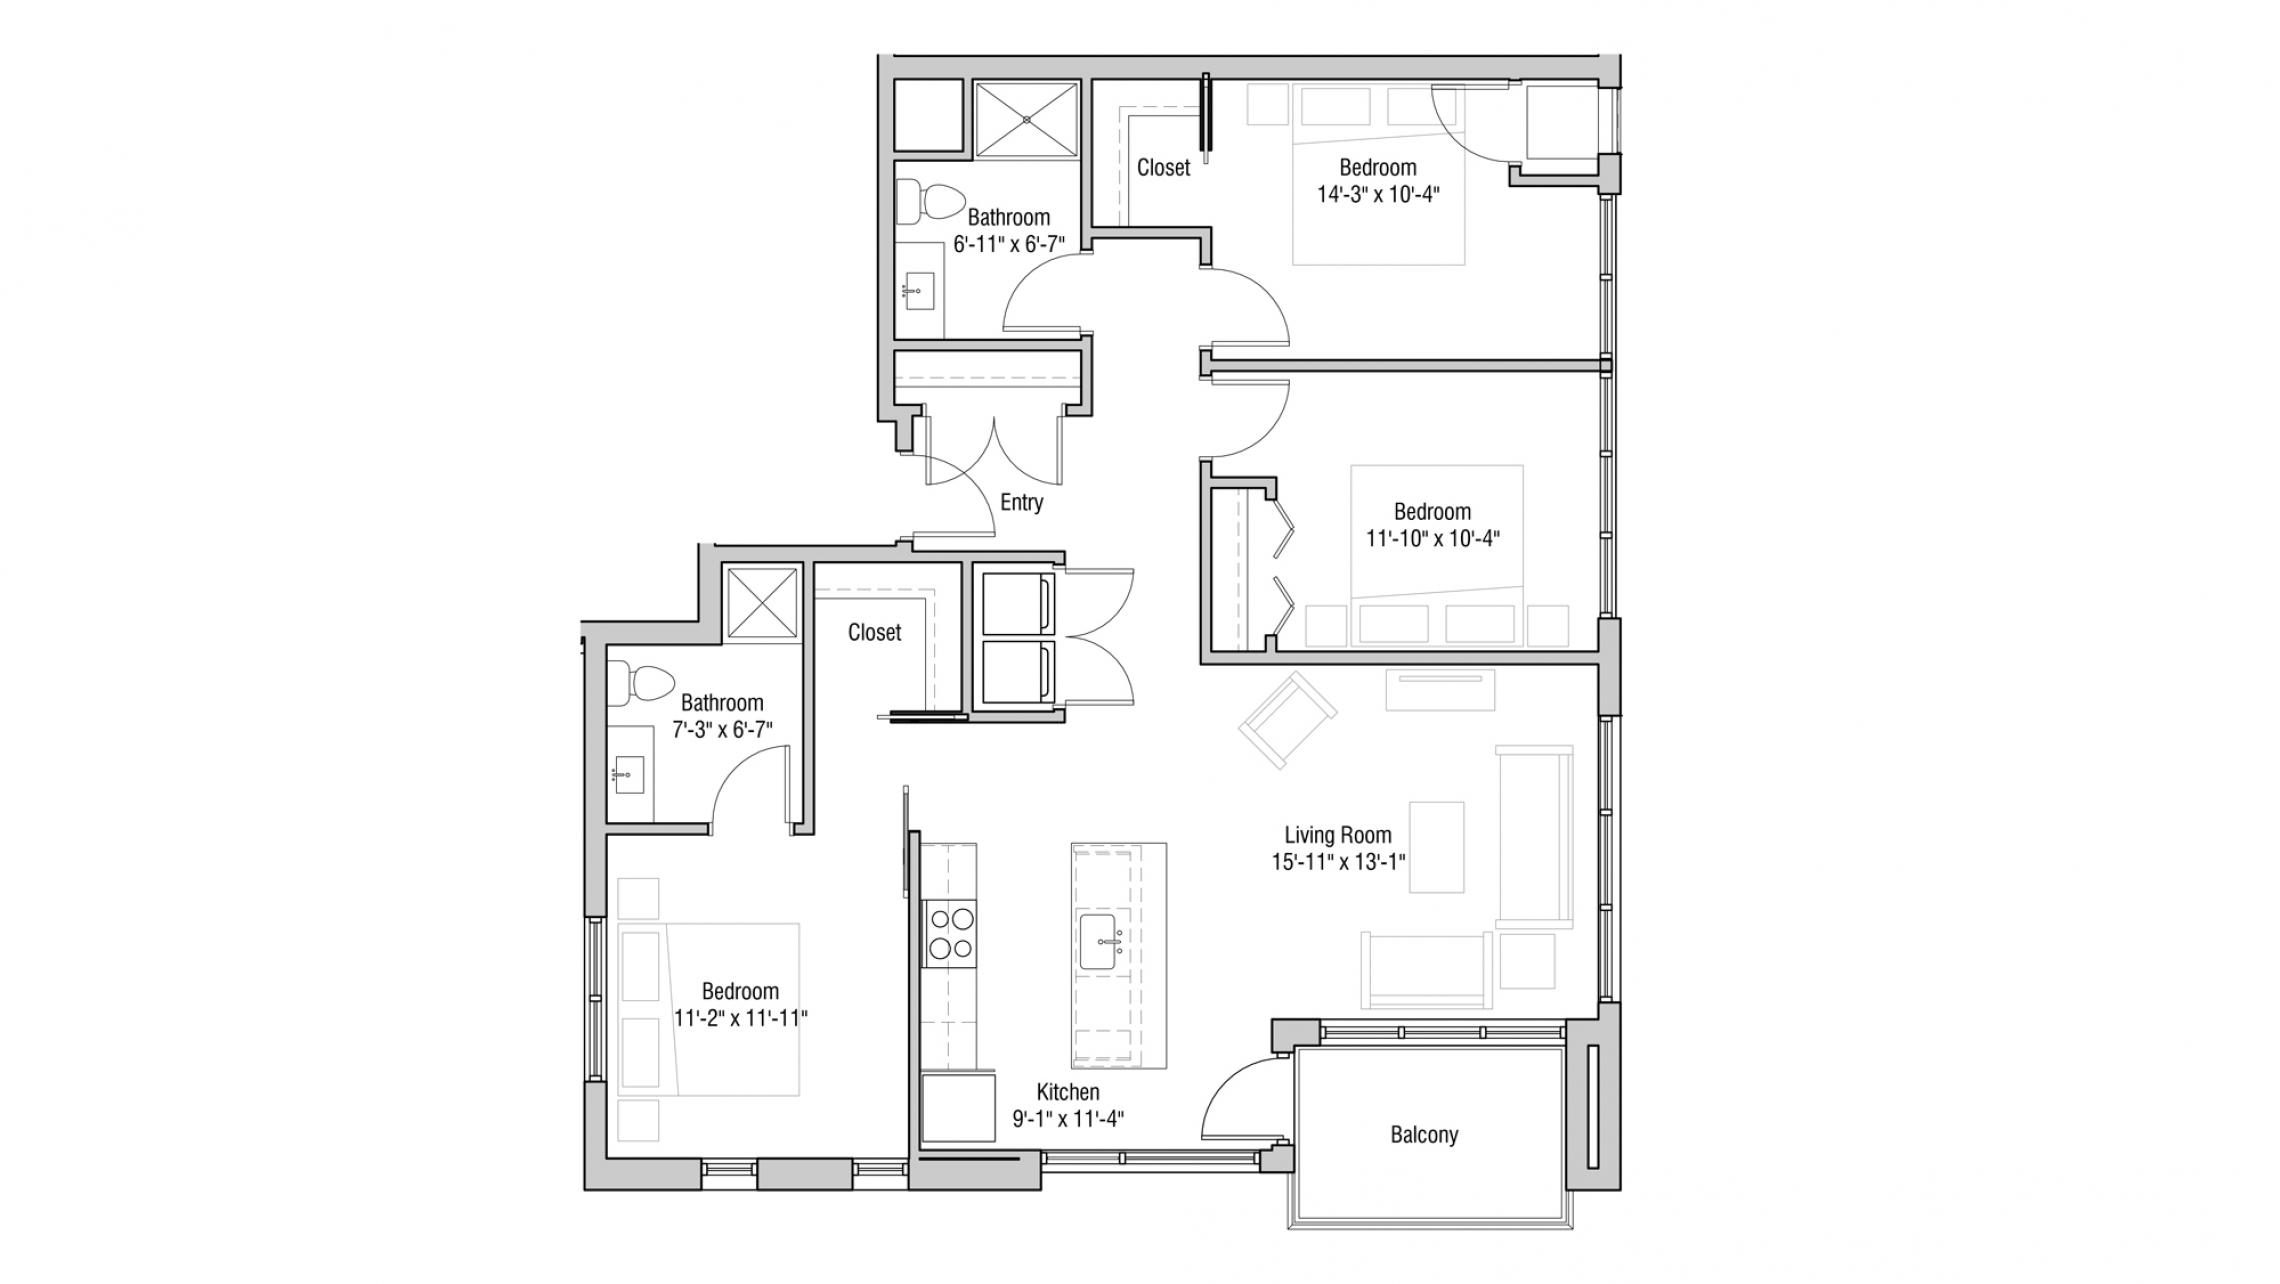 ULI Quarter Row 301 - Three Bedroom, Two Bathroom